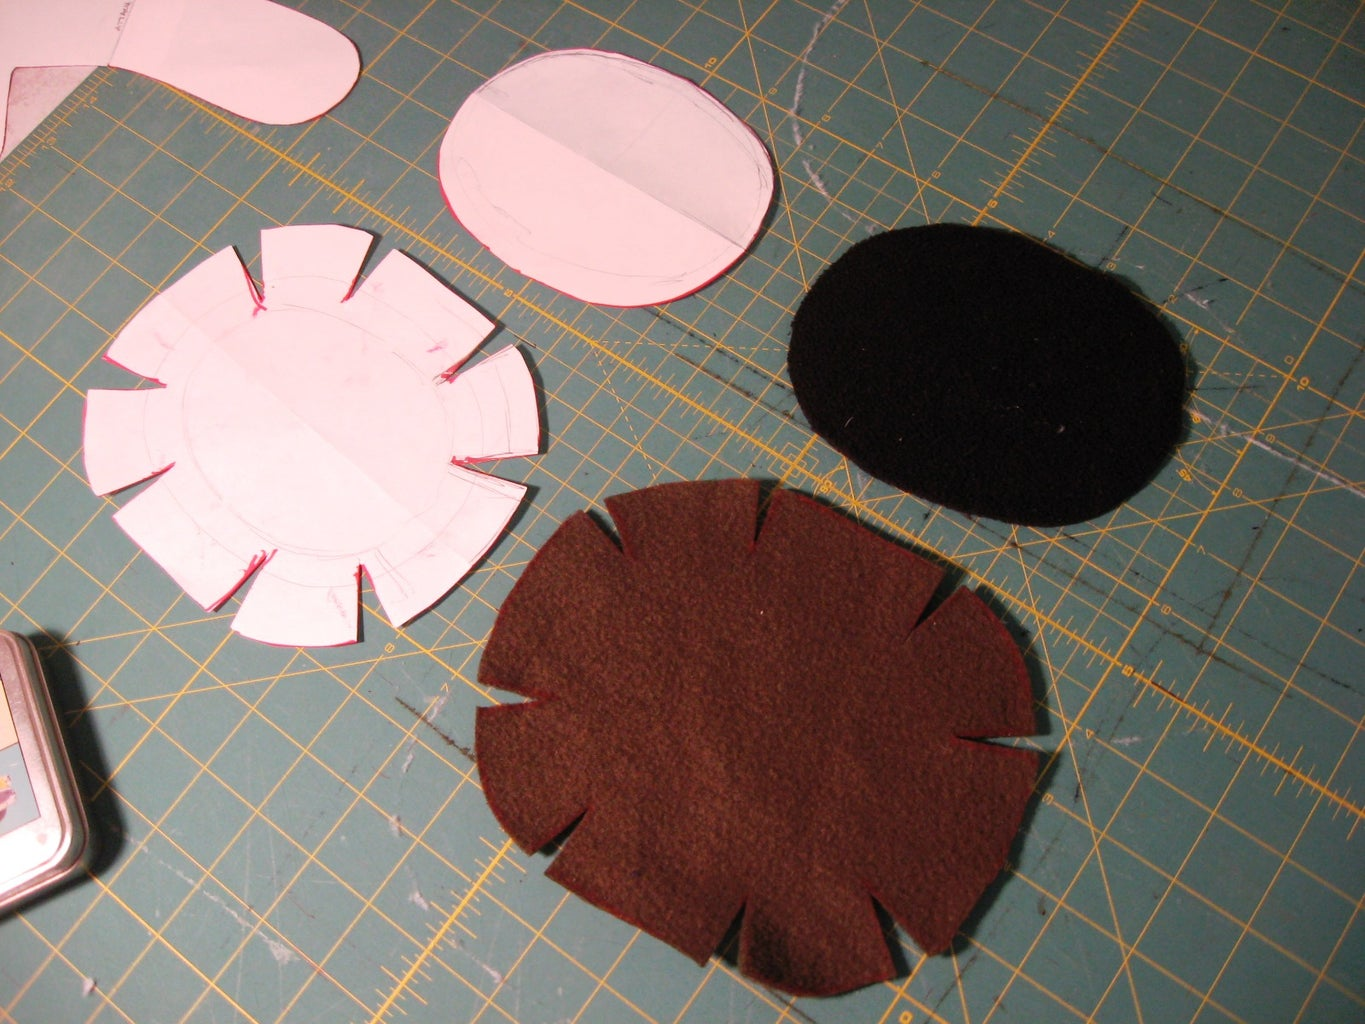 Turtle Shell Construction, Part 1